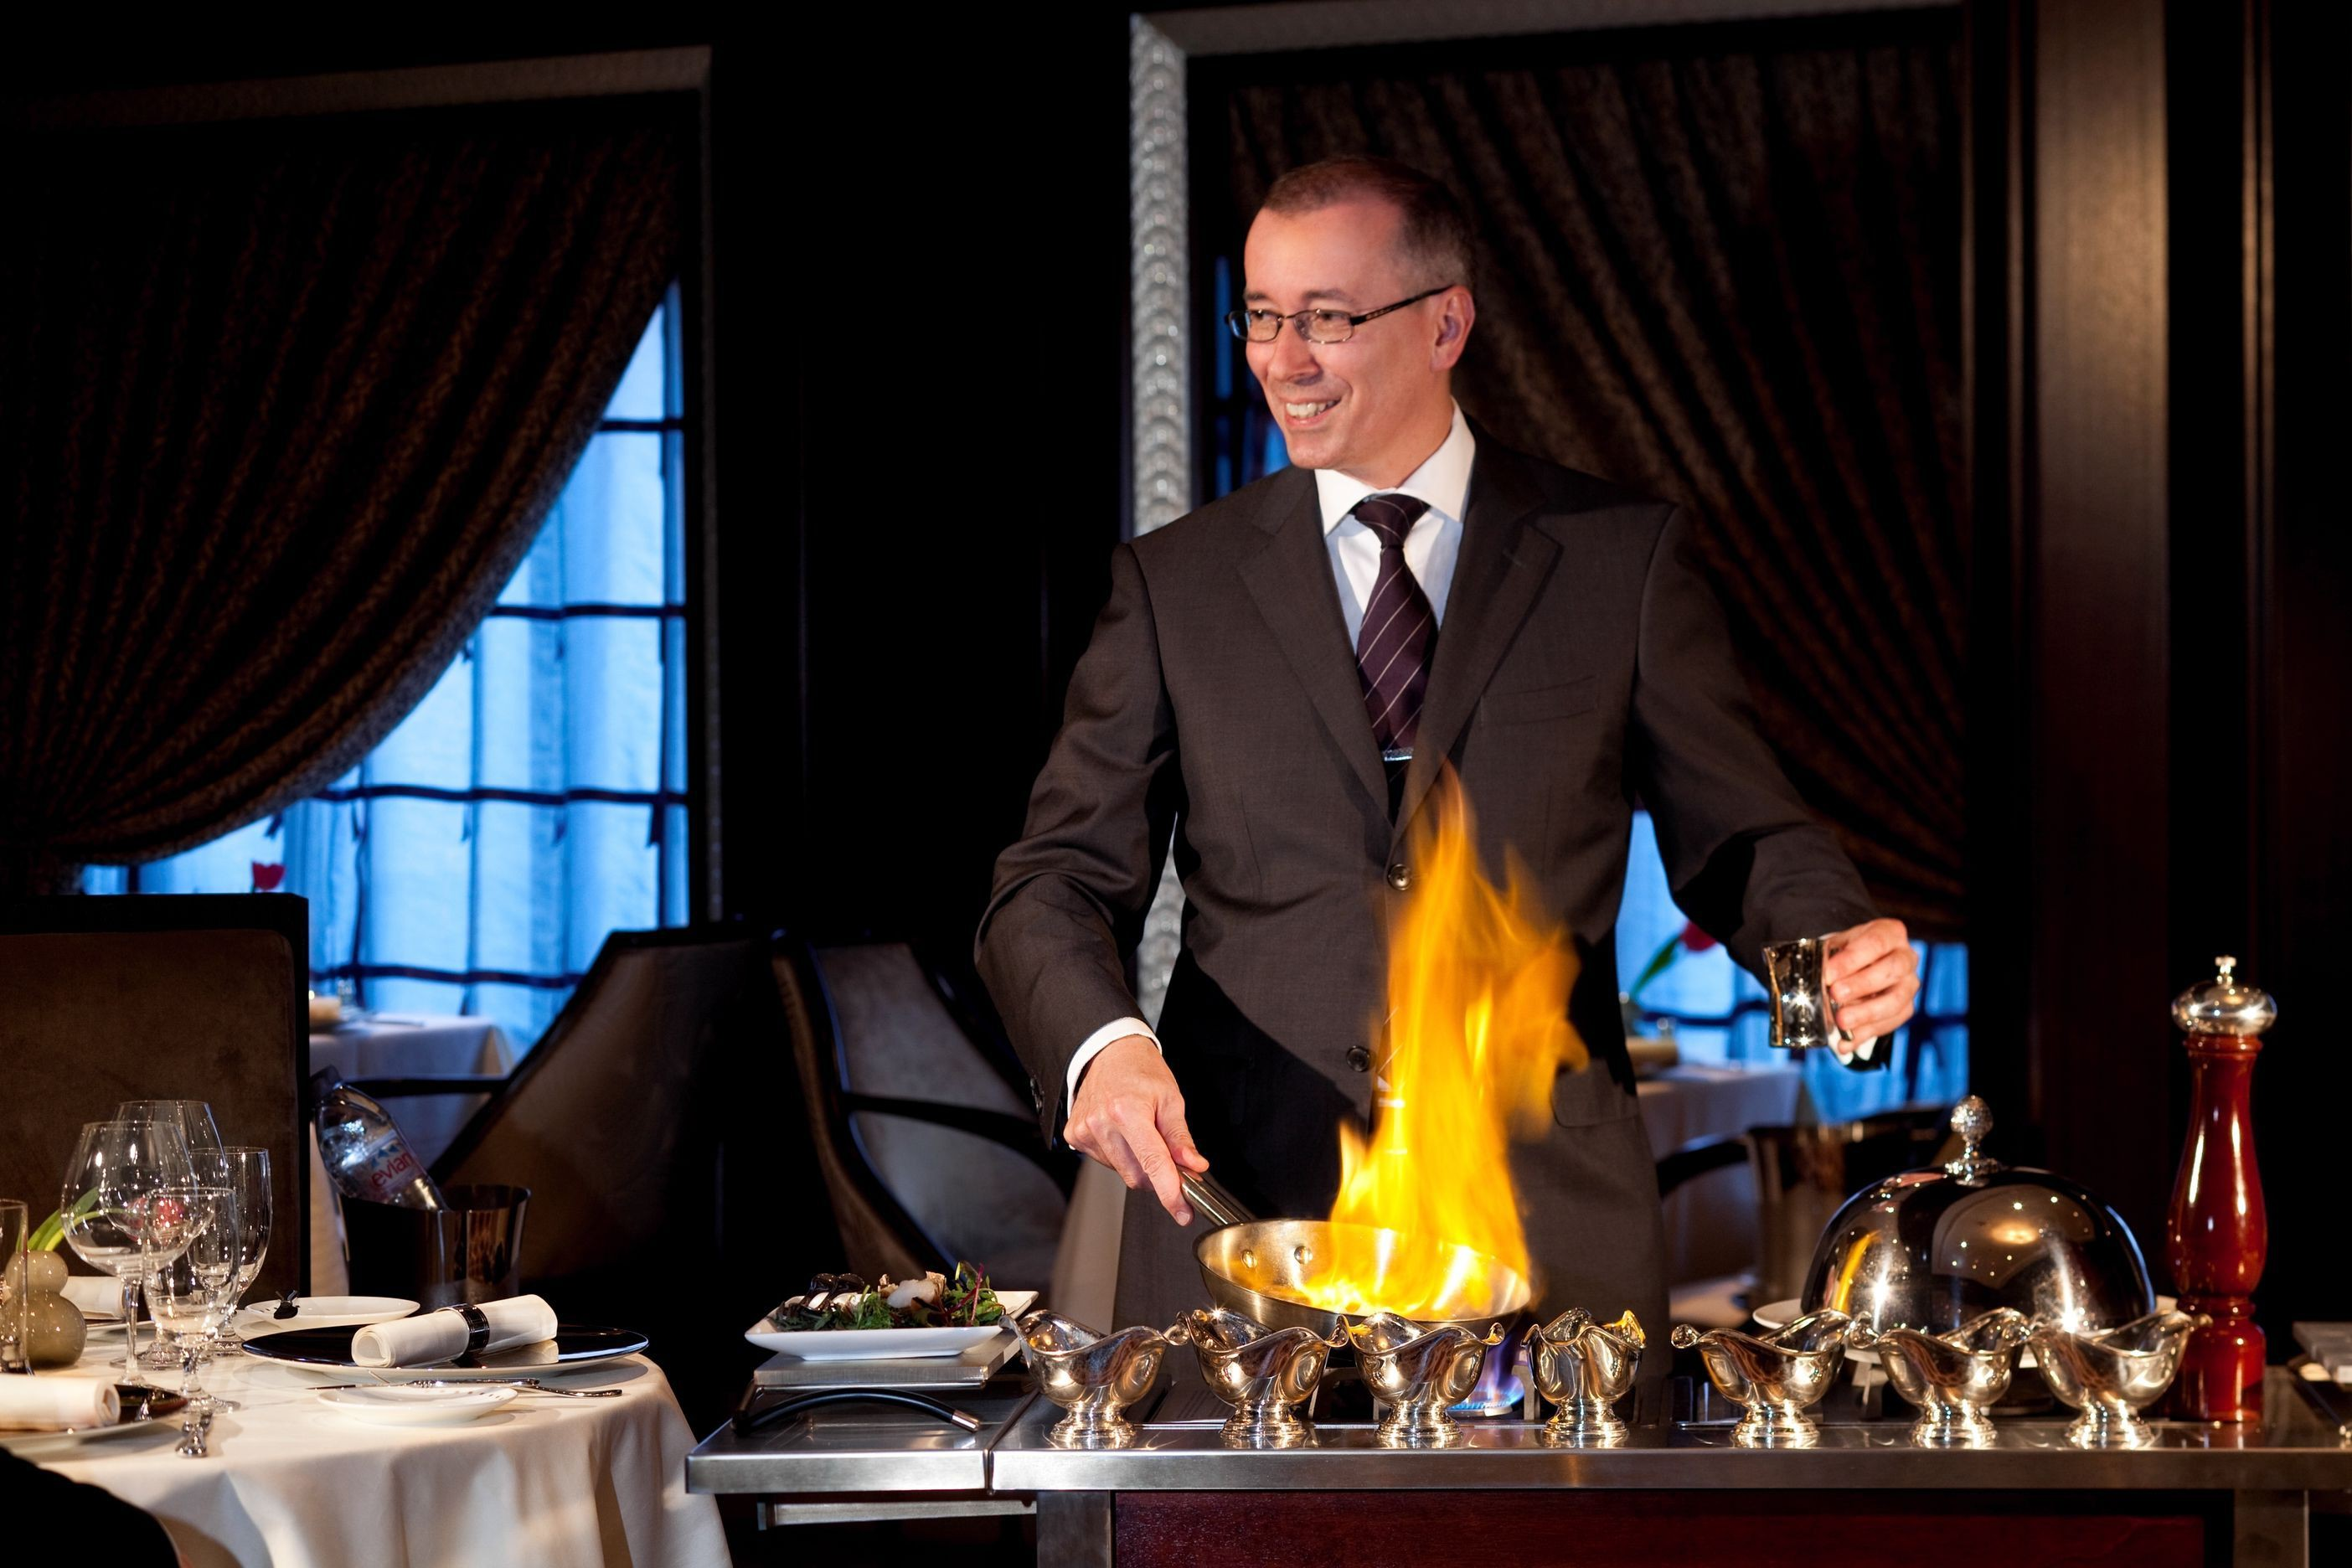 Flambe Restaurant on Celebrity Eclipse